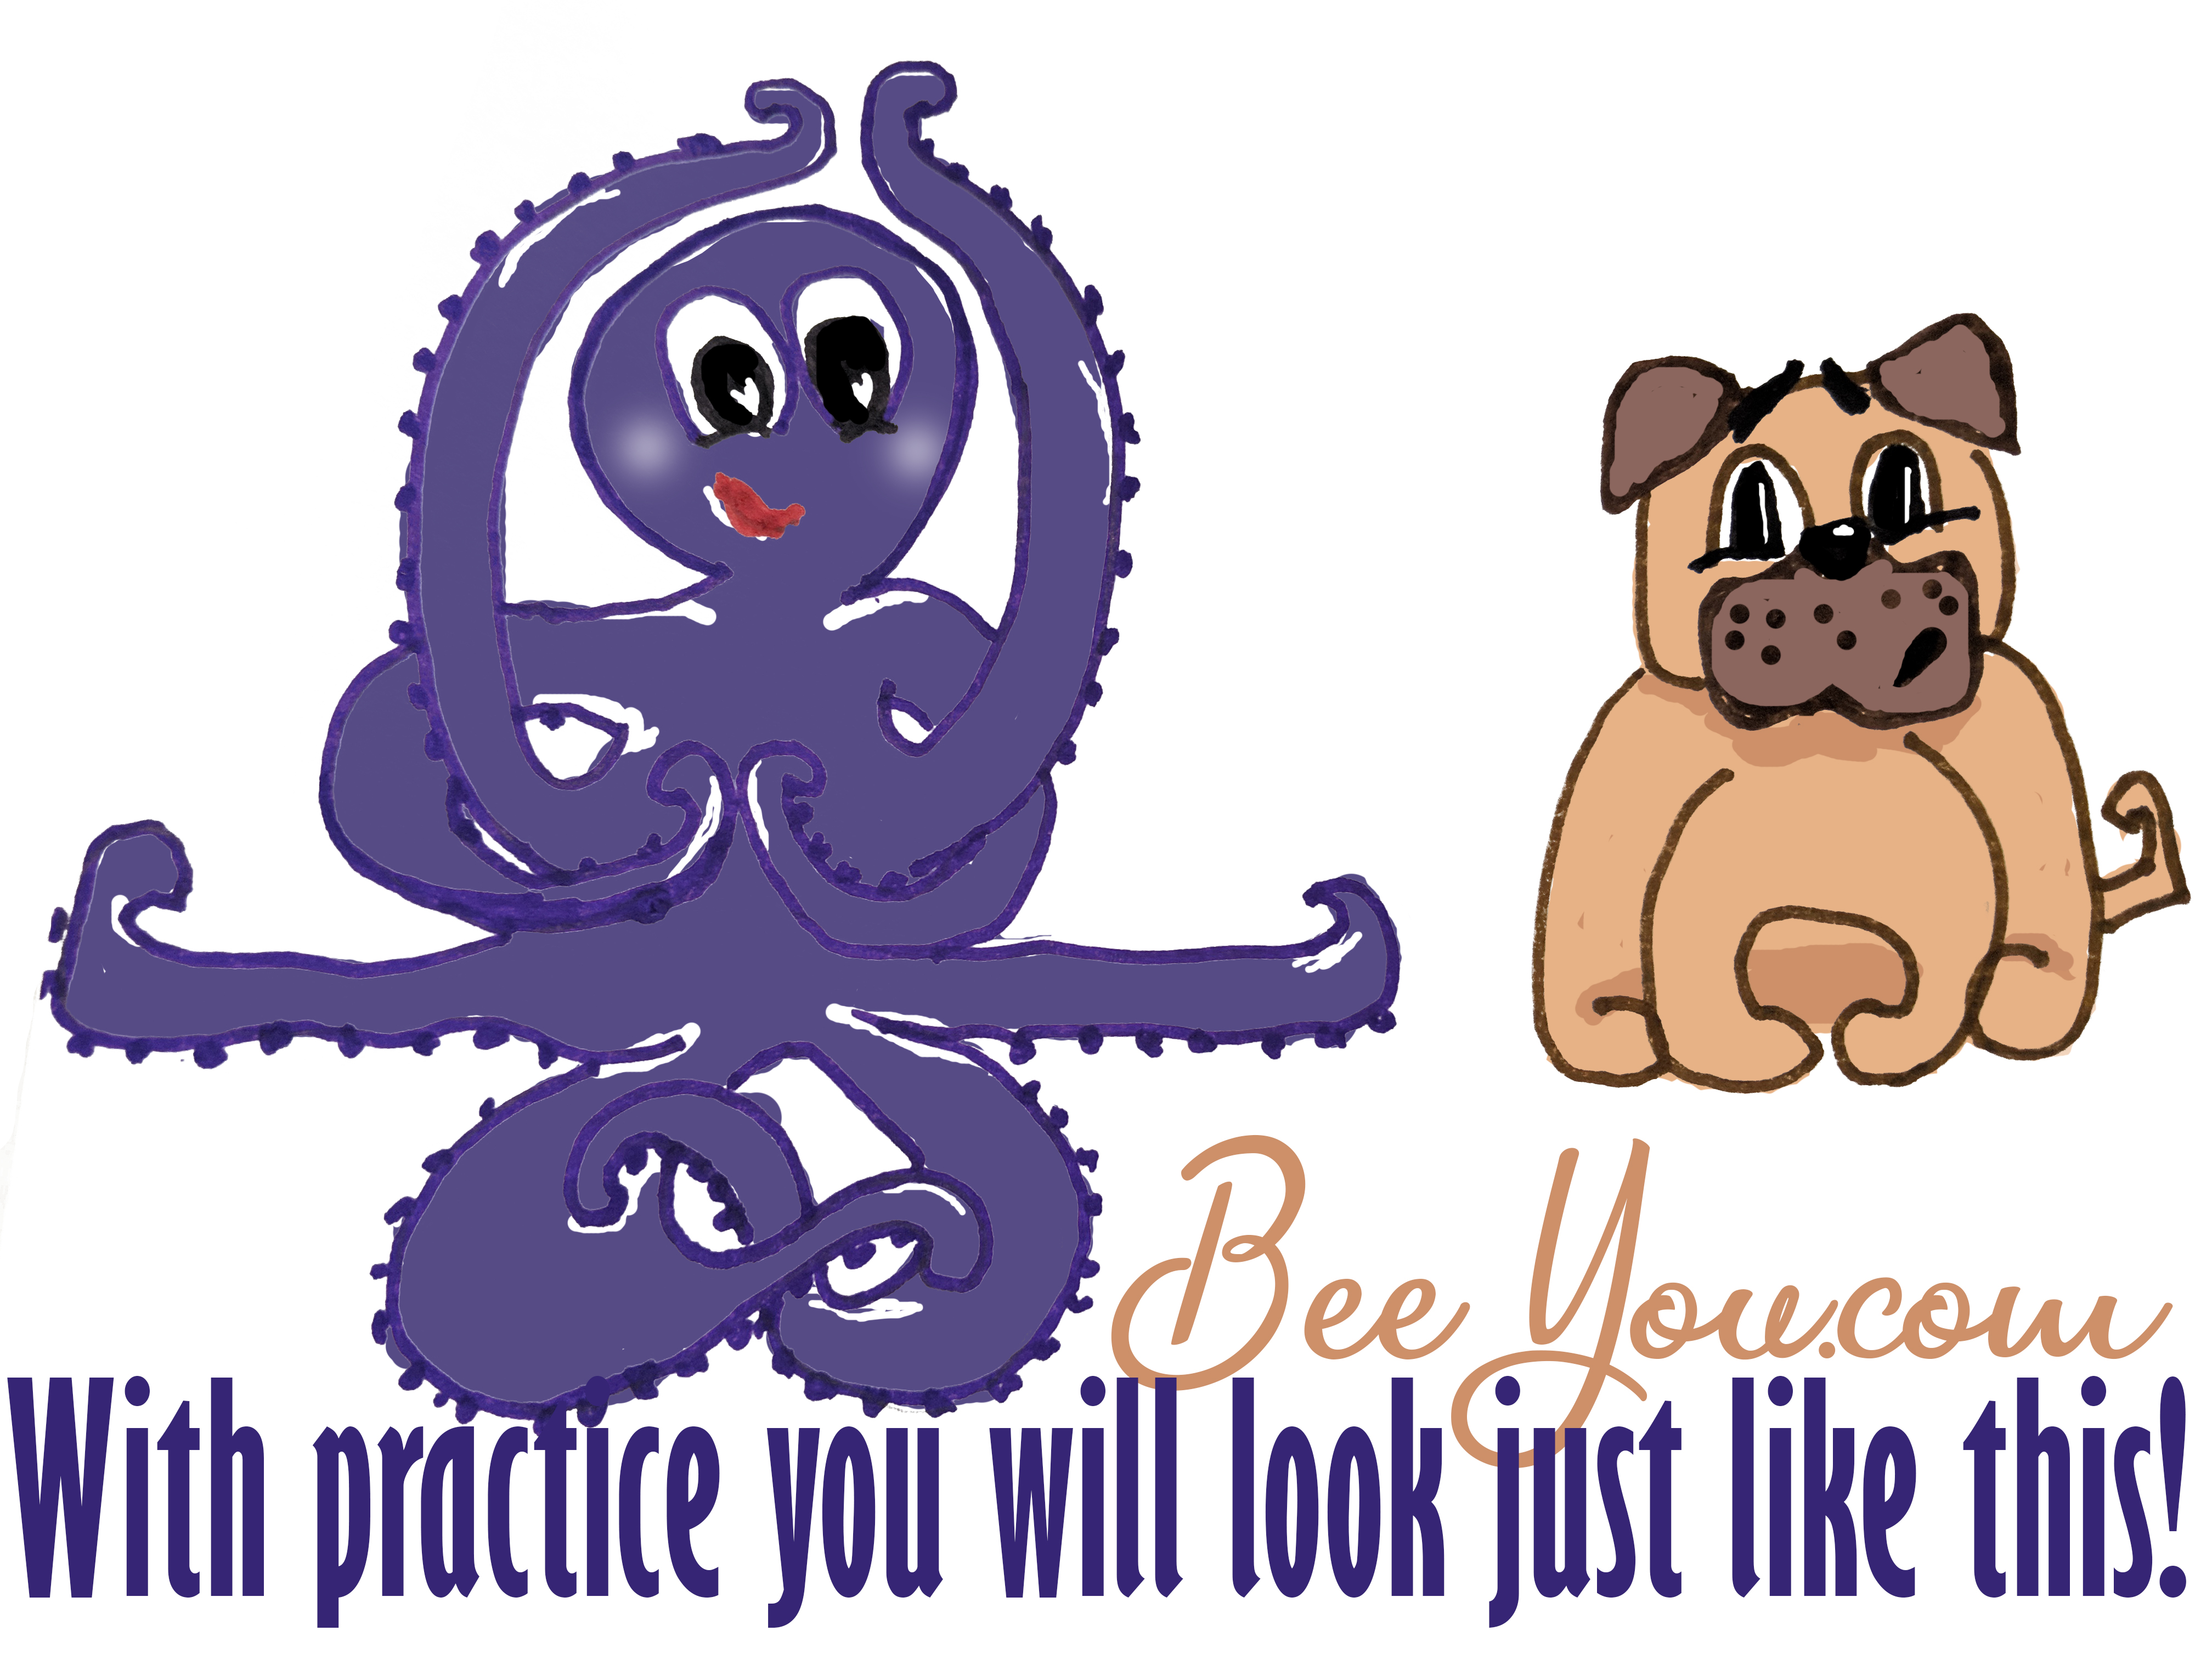 Bee You Yoga and Wellness - Yoga Therapy, Yoga, Yoga for anxiety, Yoga for depression, Yoga for recovery, y12sr, donation based yoga & meditation for everyone, kids yoga, BARRE, Sadie Nardini Yoga Shred Fusion, Full body conditioning, Yoga Nidra, Swedish massage, myofascial release, PSYCH-K, Reiki, BARRE, ZUMBA, Yoga Shred, Bee You Yoga, Yoga 07885, Yoga 07869, Randolph, Roxbury, Mine Hill, New Jersey, North Jersey, Morris County, Yoga Morris County, Buti Yoga, yogassage, theta healing